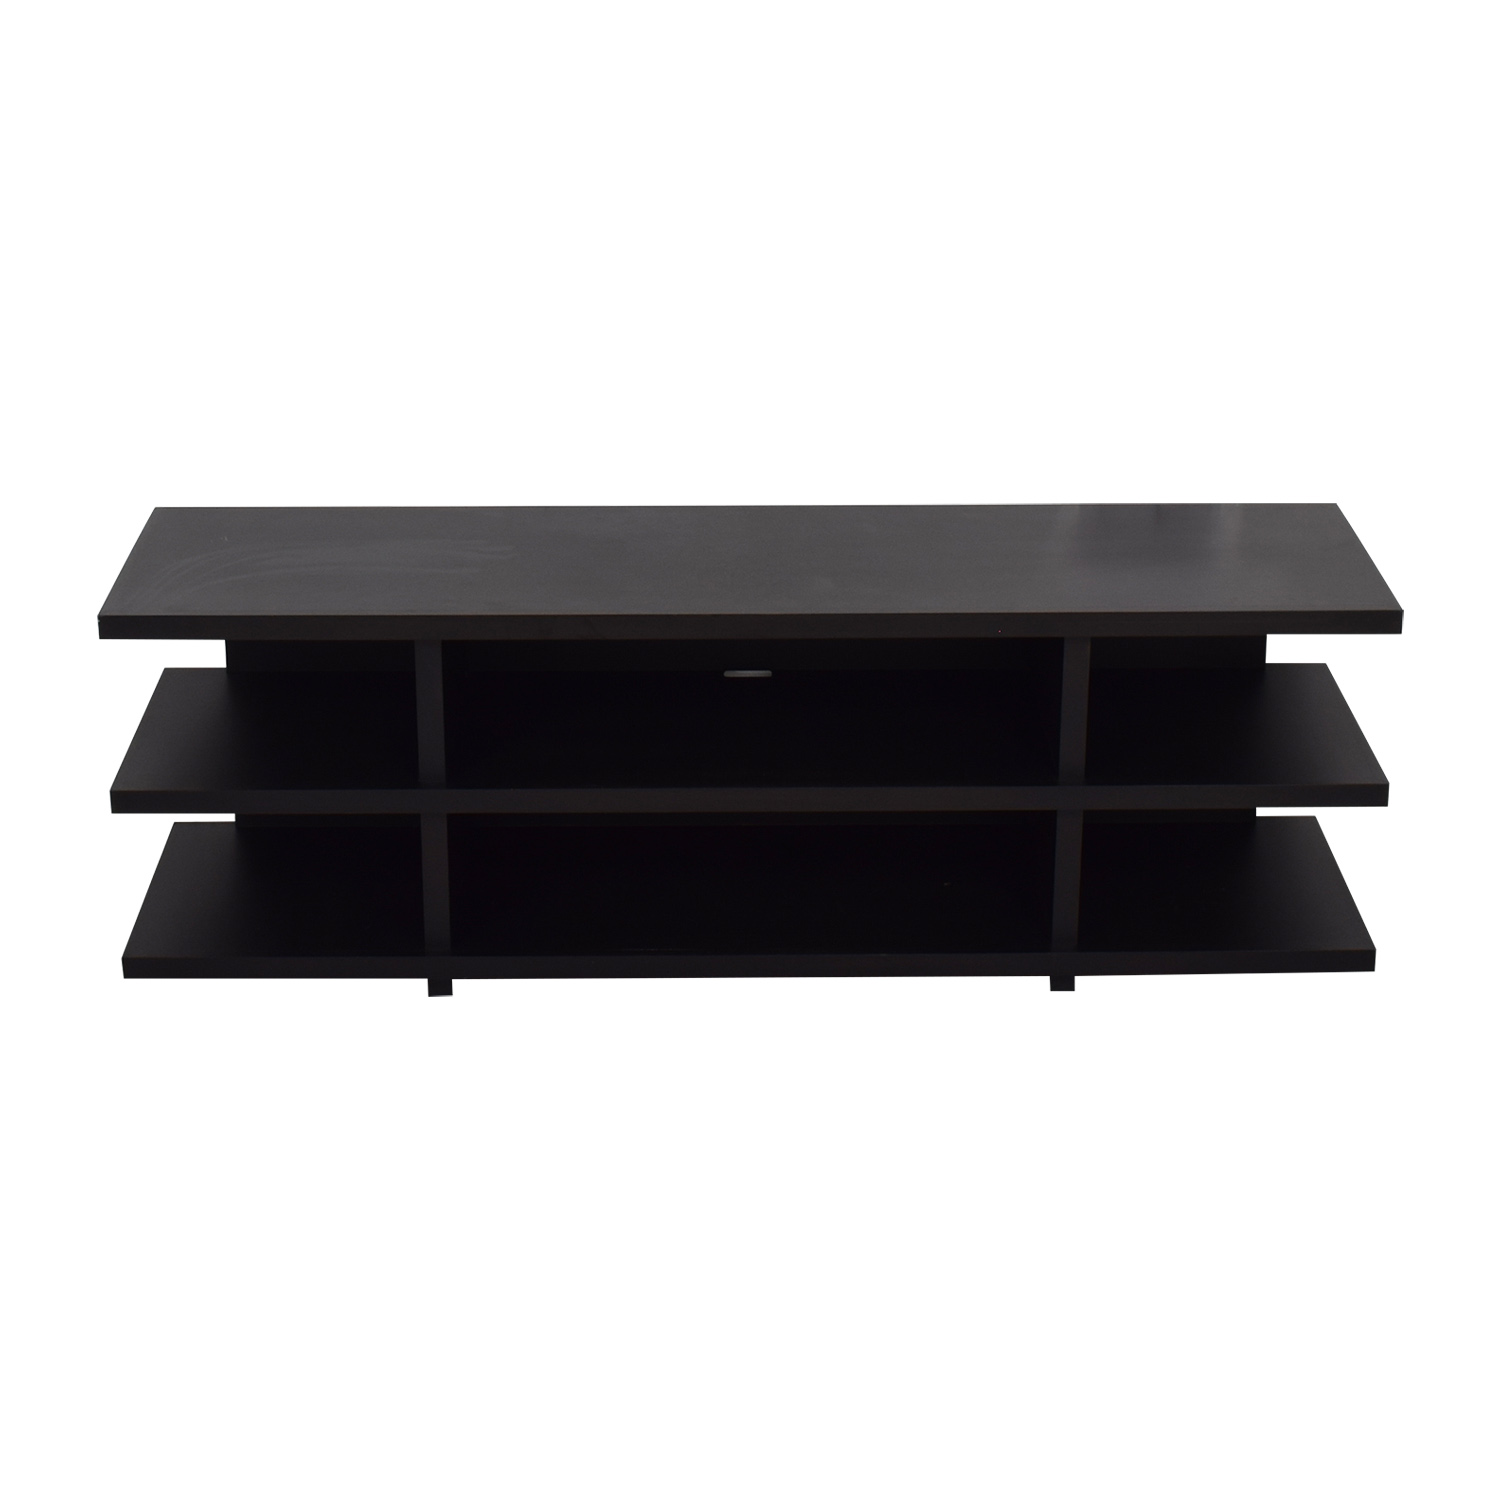 Room & Board Room & Board Graham Maple with Charcoal Stain Media Console dimensions